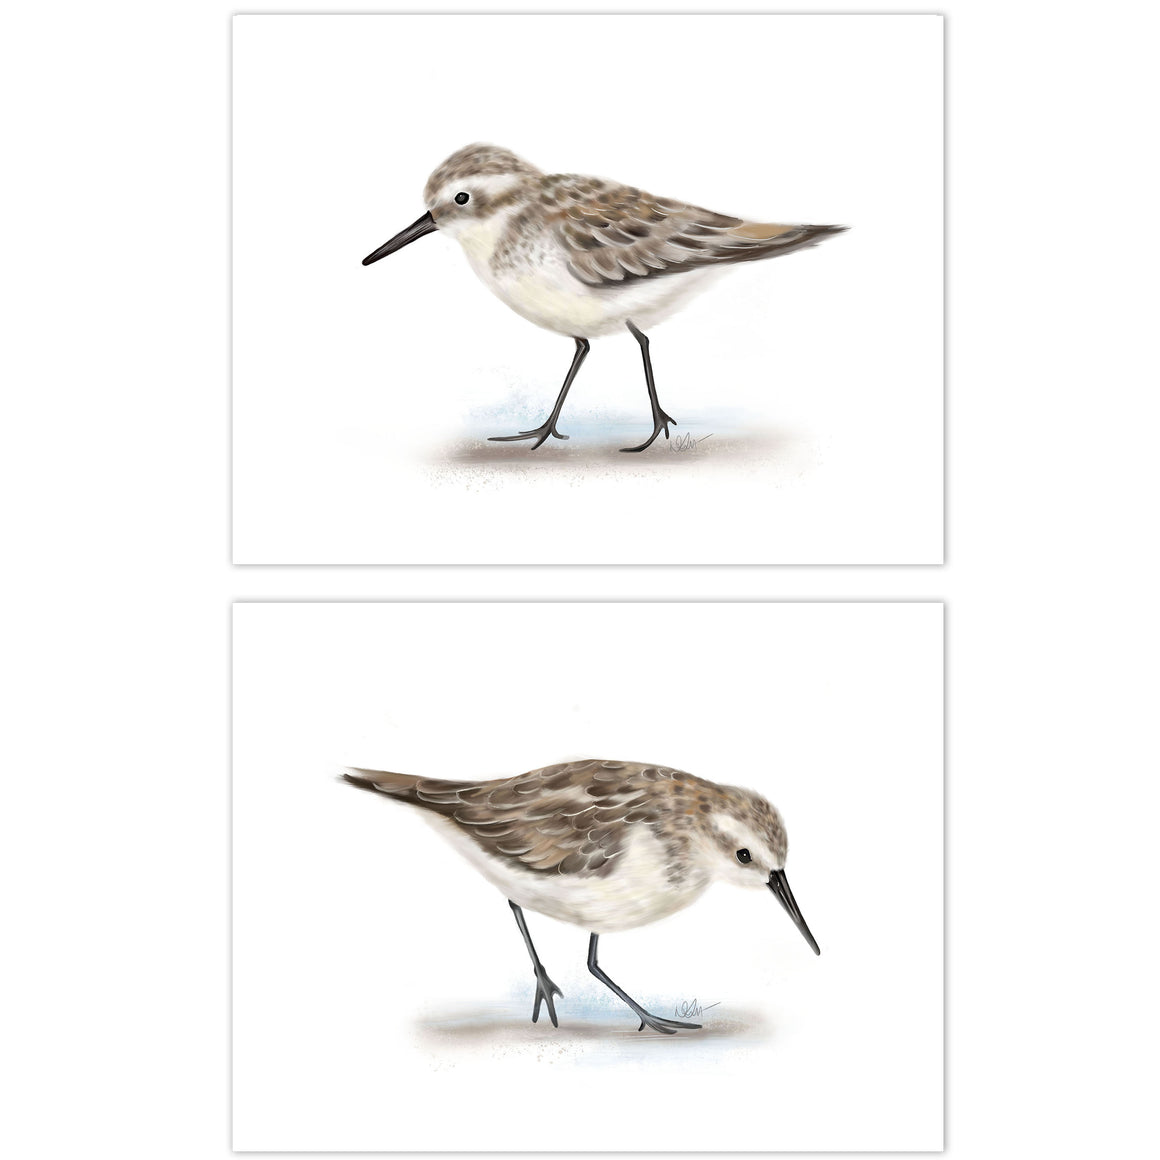 Sandpiper Bird Art Prints - Studio Q - Art by Nicky Quartermaine Scott